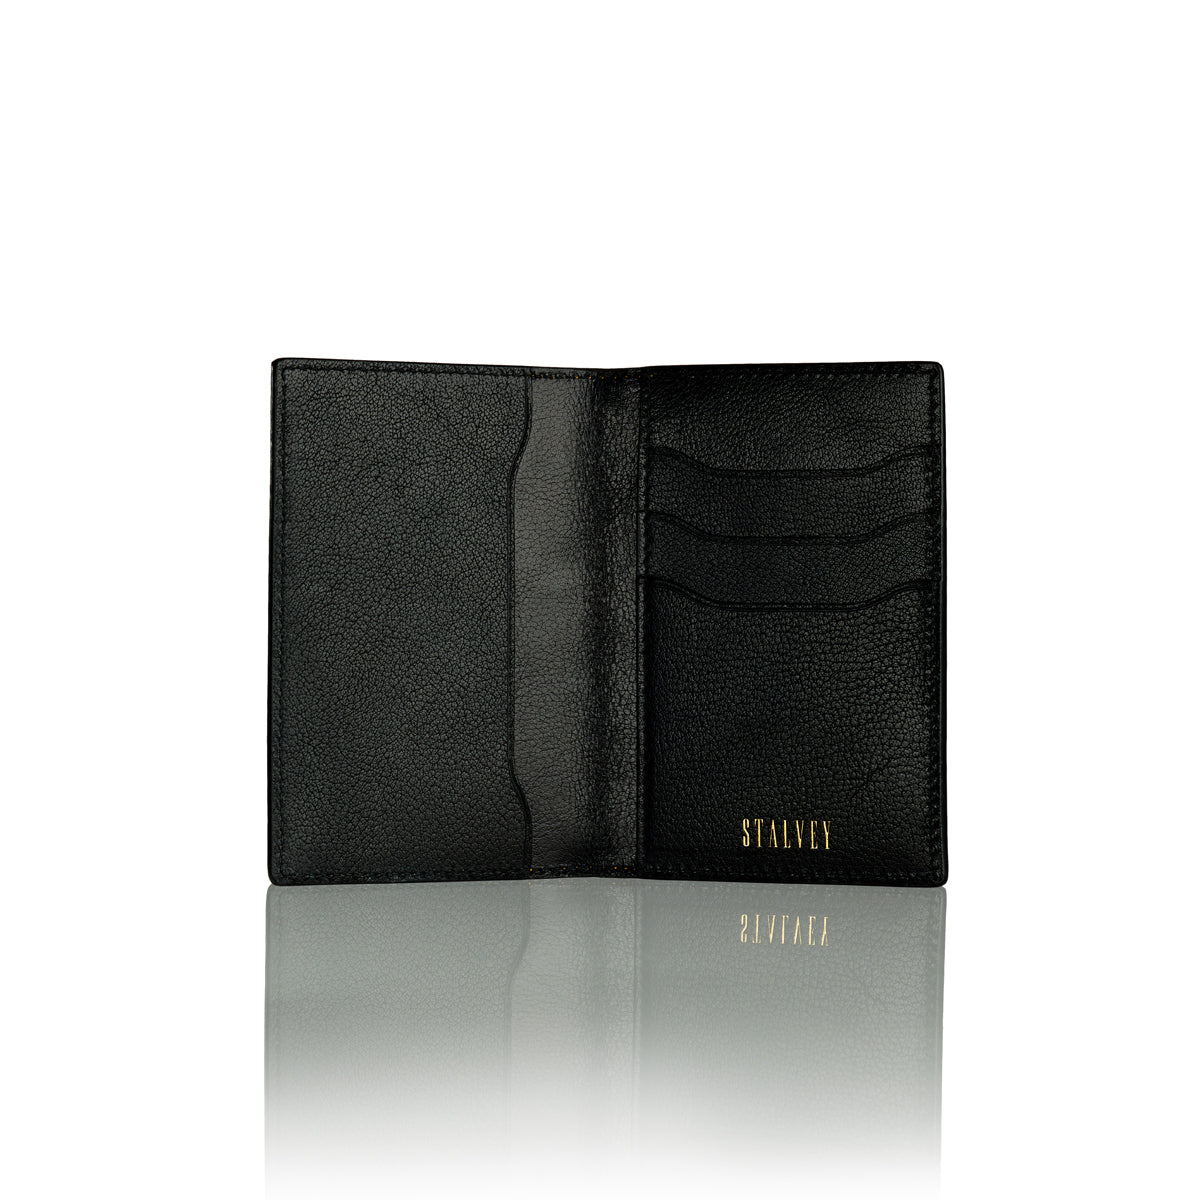 Vertical Bi-Fold Wallet - Matte Black Alligator